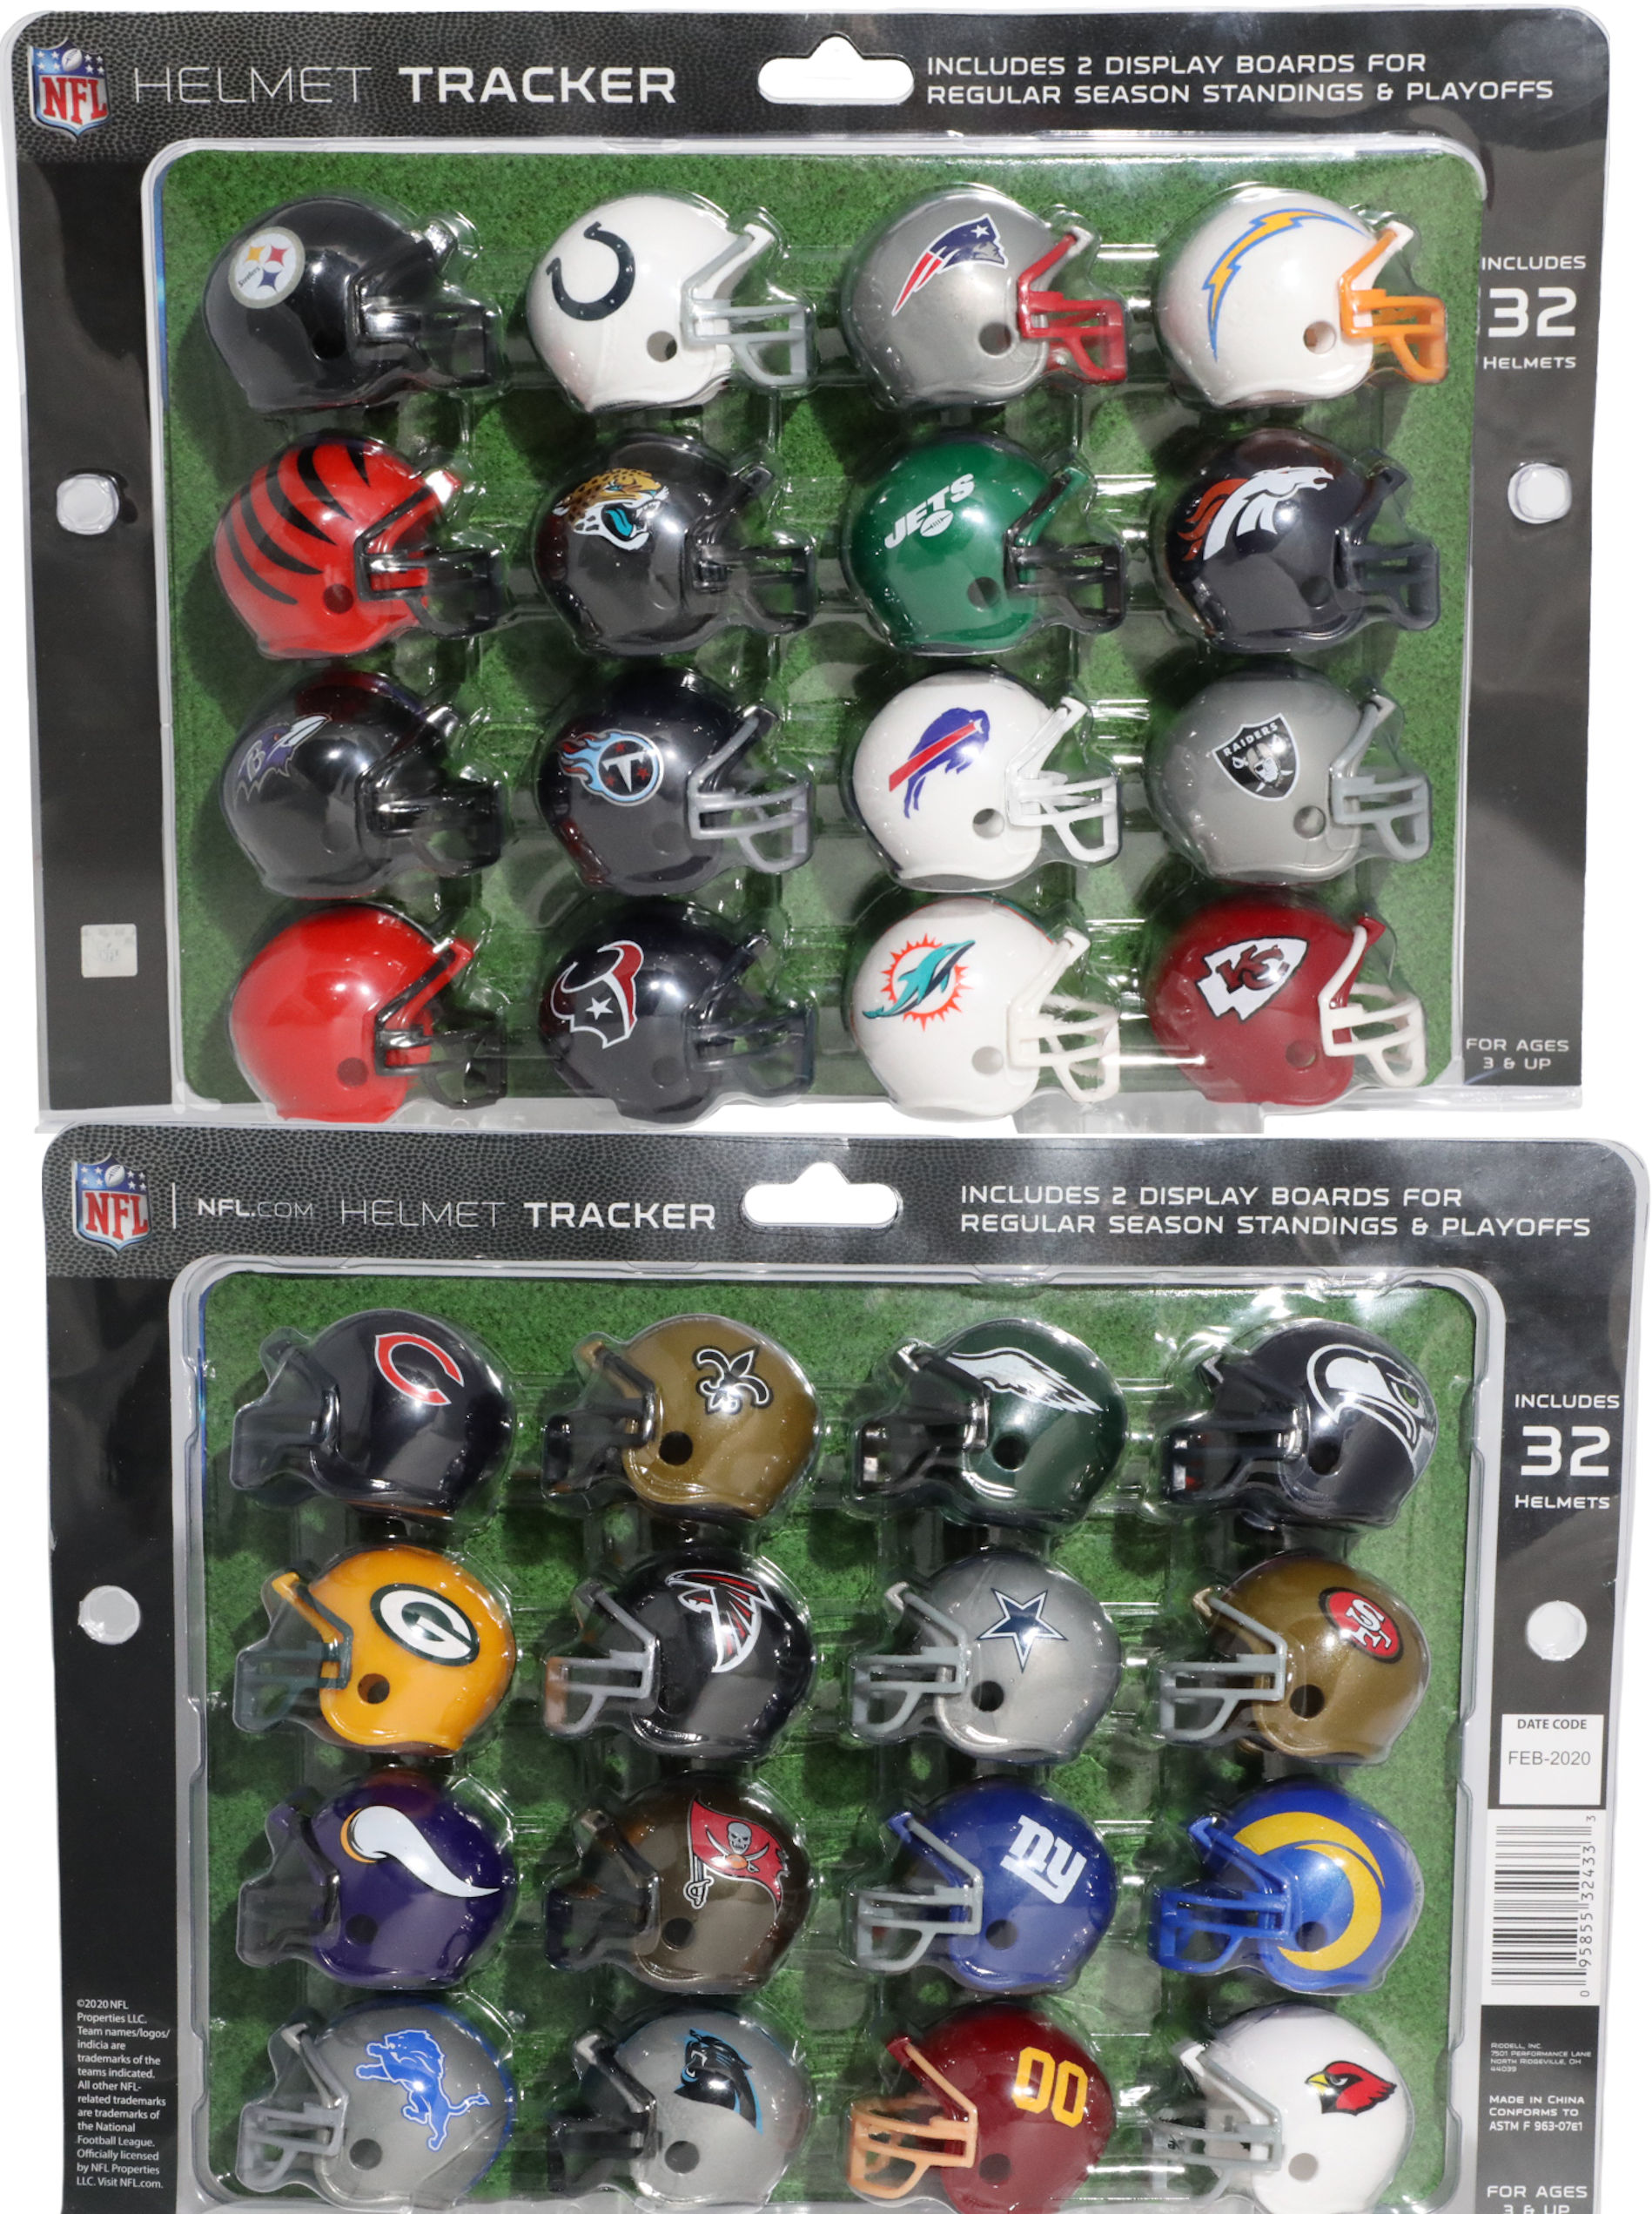 2020 NFL Helmet Tracker Set 32 Piece Set <B>NEW</B>